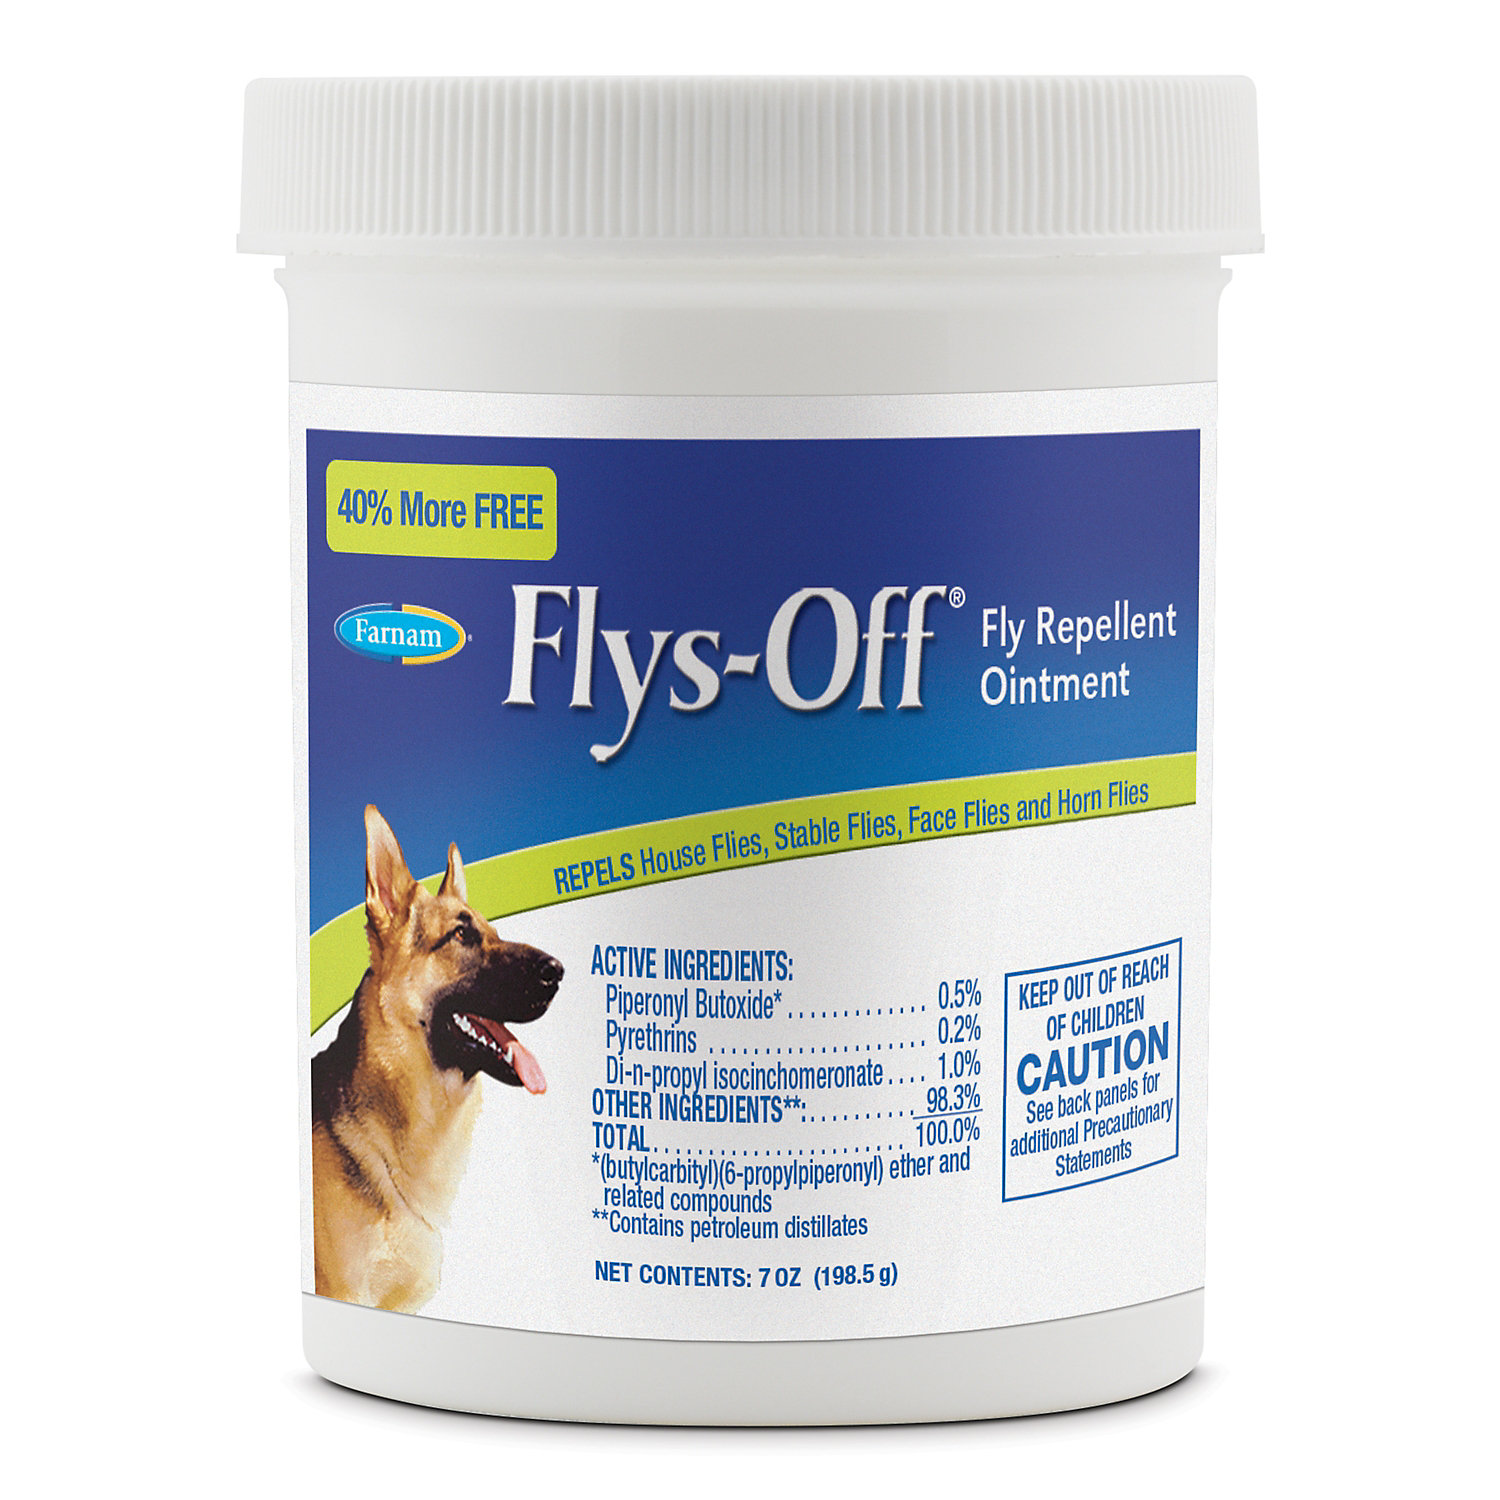 Image of Farnam Flys-Off Fly Repellent Ointment for Wounds & Sores for Dogs, 7 fl.oz., 7 FZ